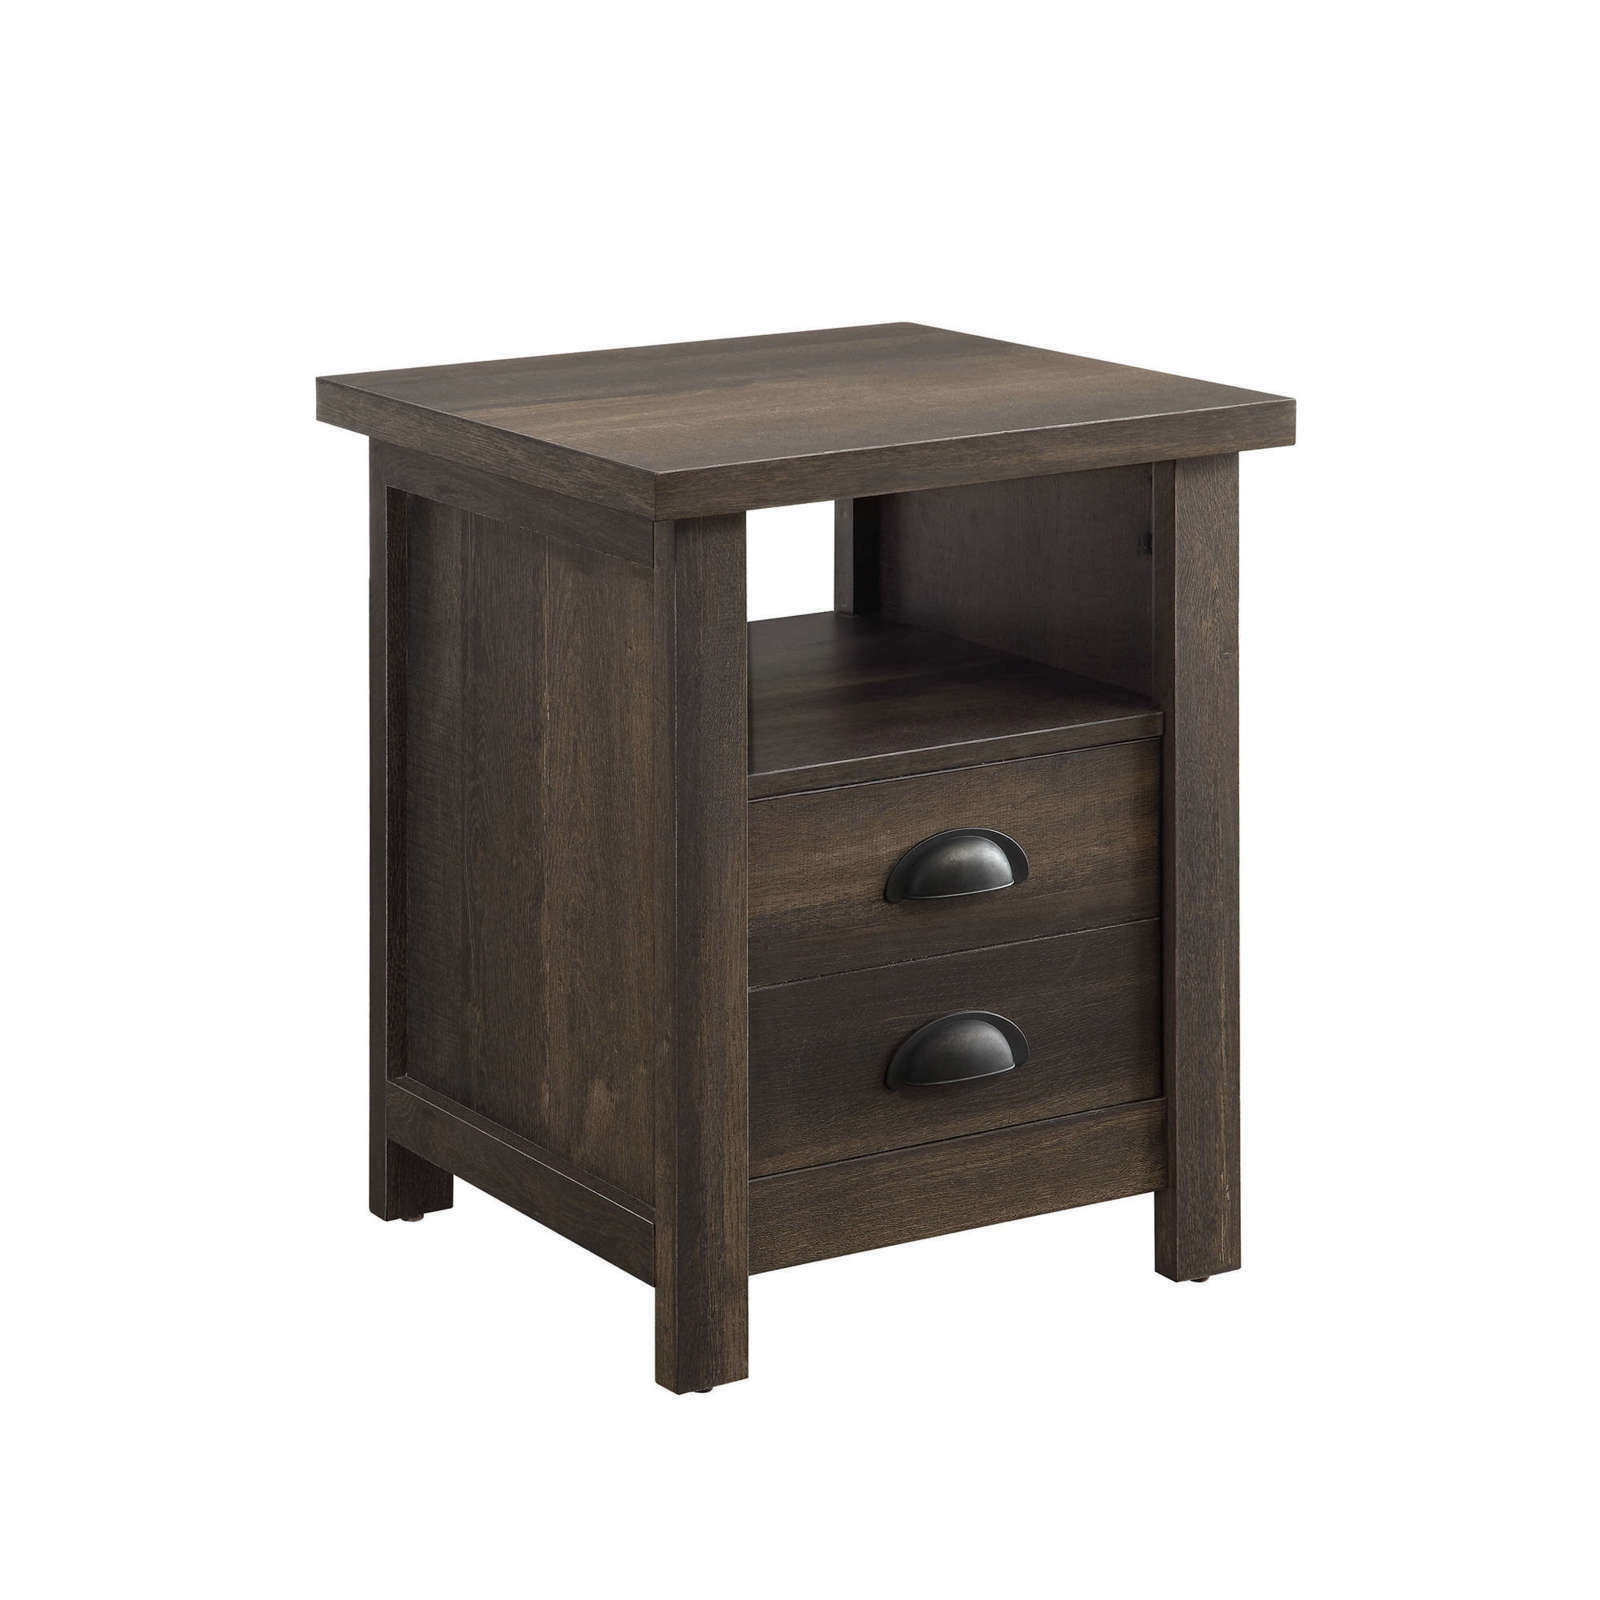 better homes modern farmhouse side table living room bedroom rustic grey end tables gray finish for sauder computer furniture large outdoor universal ltd taiwan kmart pool